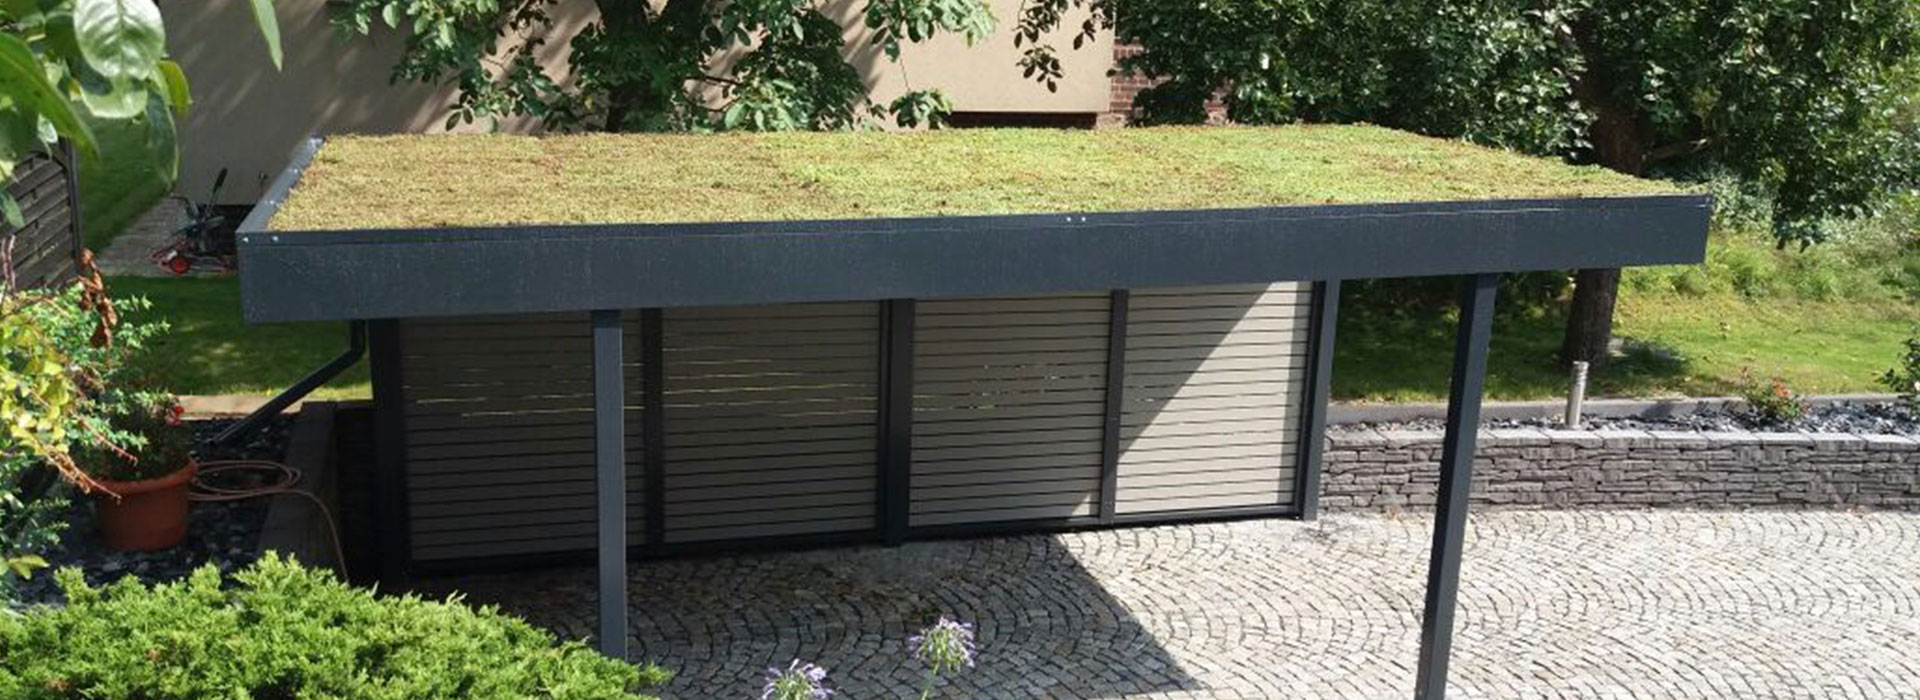 carport preise die kosten f r das bauen lassen eines carports. Black Bedroom Furniture Sets. Home Design Ideas